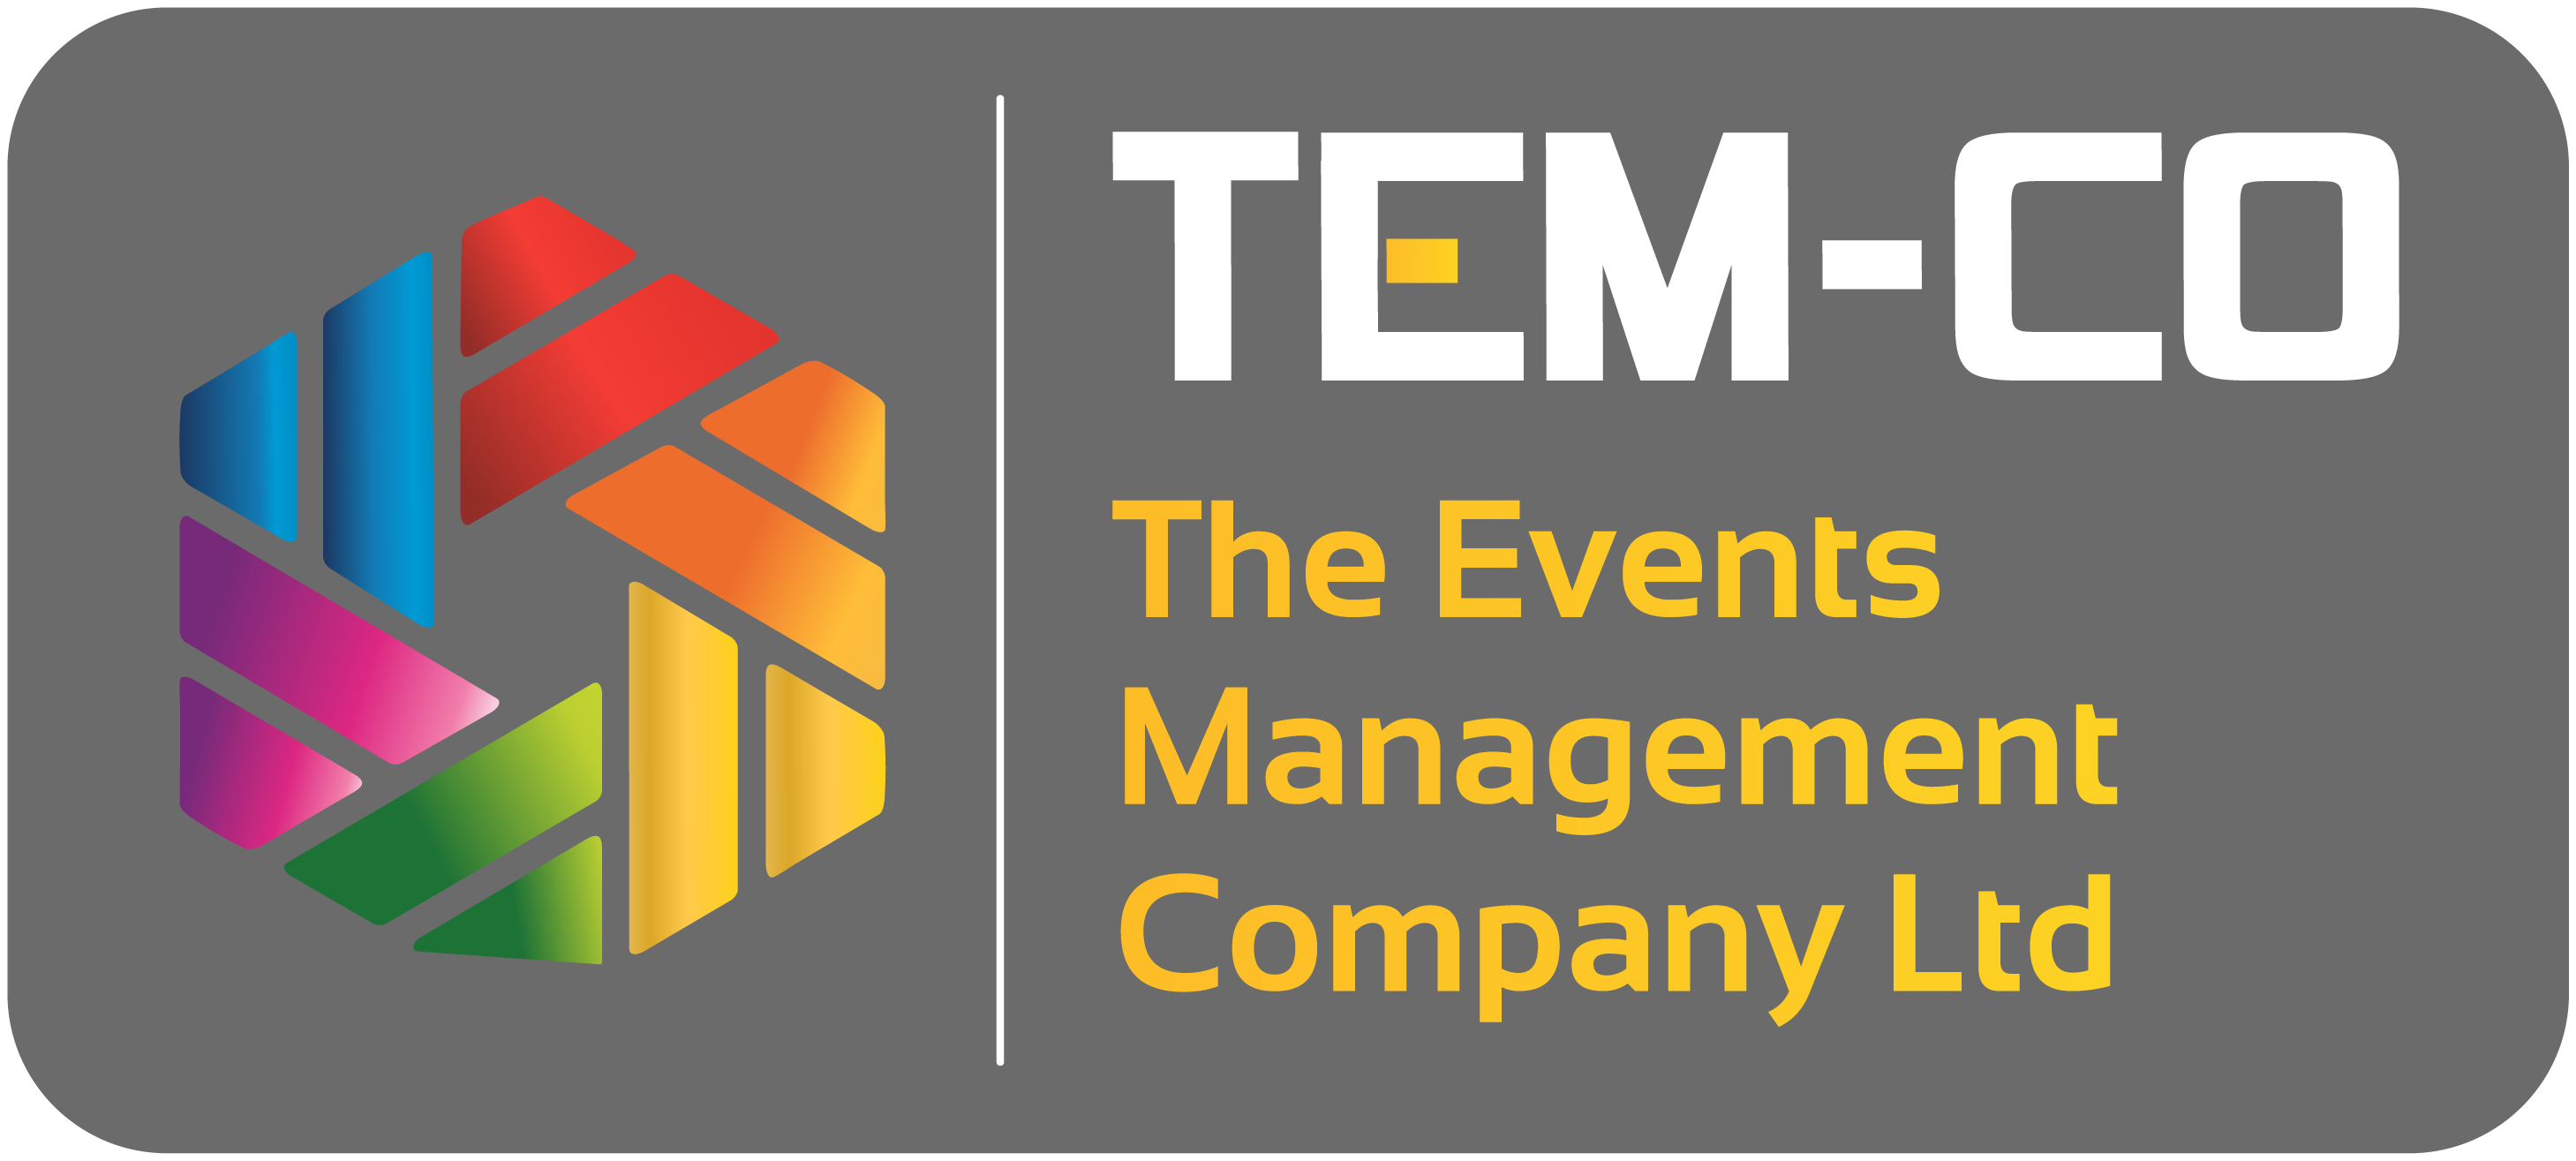 The Events Management Company - TEM-CO Logo